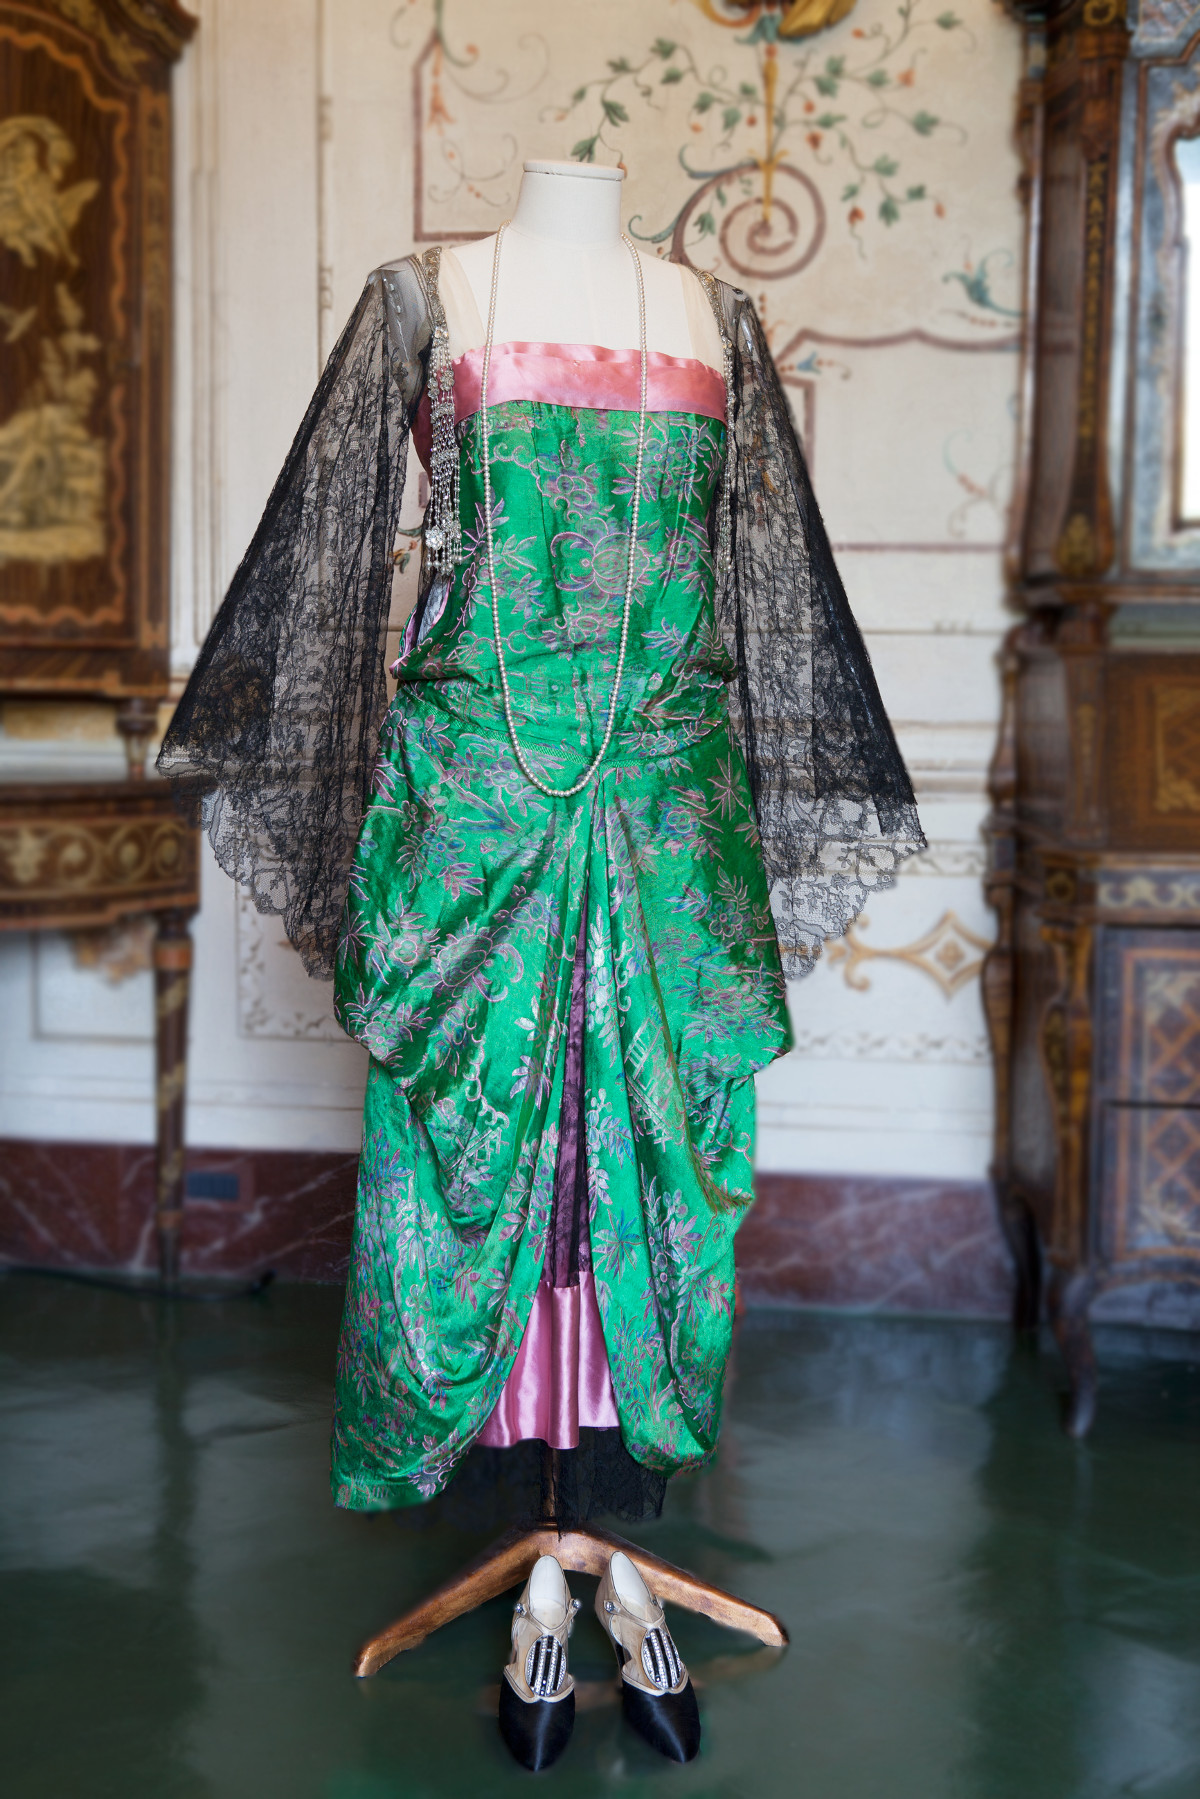 1920s. Callot Soeurs. Green and Pink Silk. Passementerie tassels composed of rhinestones, pearls and beads that hang from either shoulder. Acton Art Collection - Villa La Pietra